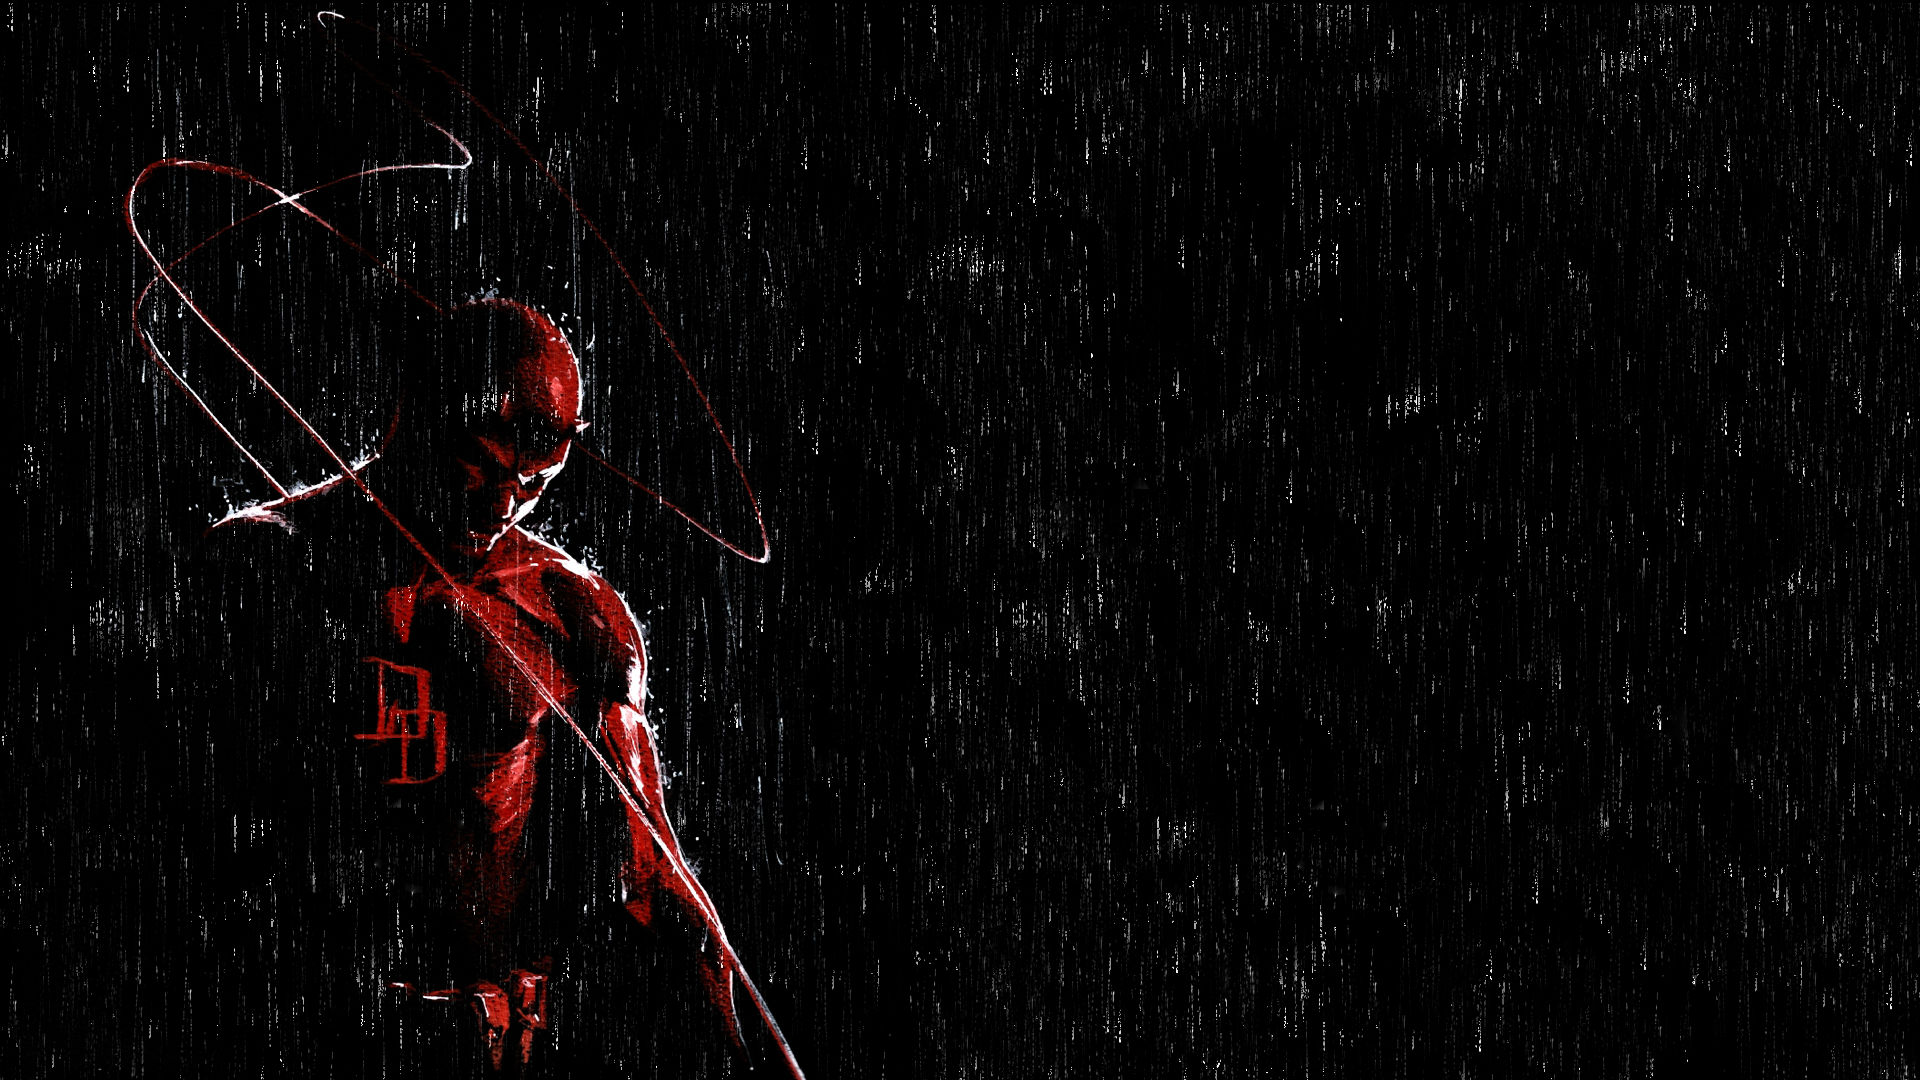 daredevil wallpaper iphone hd